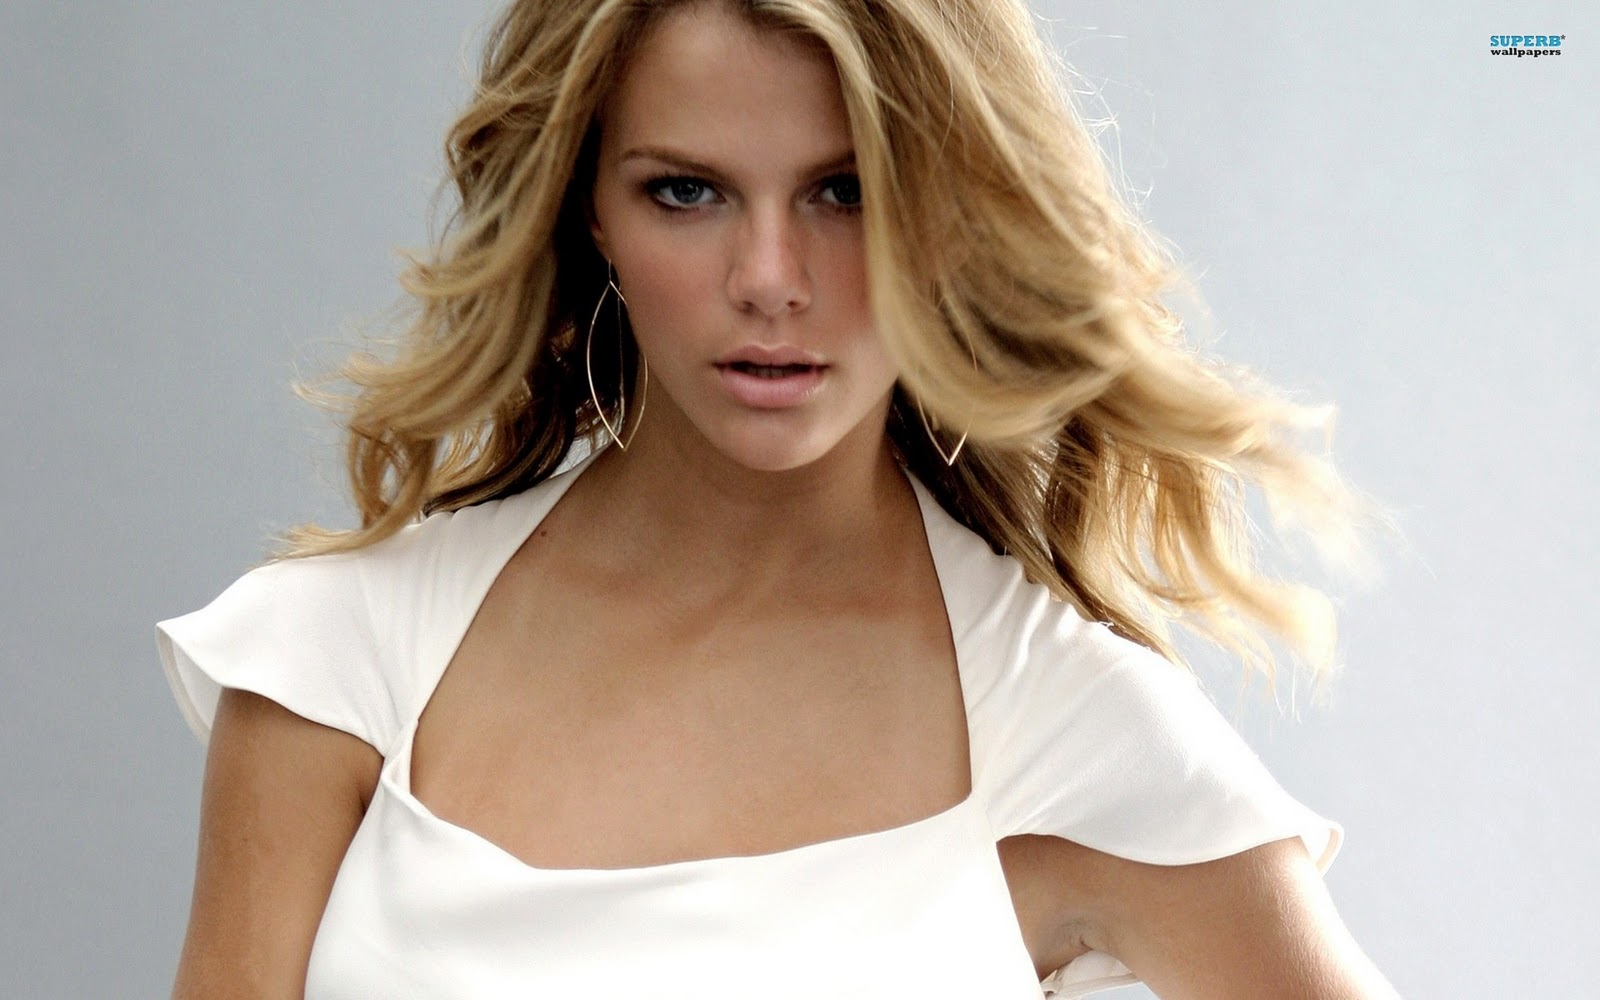 http://3.bp.blogspot.com/-GH2xDpqStCo/T4vk7ICPUKI/AAAAAAAAKZQ/STniooqIpSU/s1600/Brooklyn-Decker-Wallpapers-Widescreen-.jpg